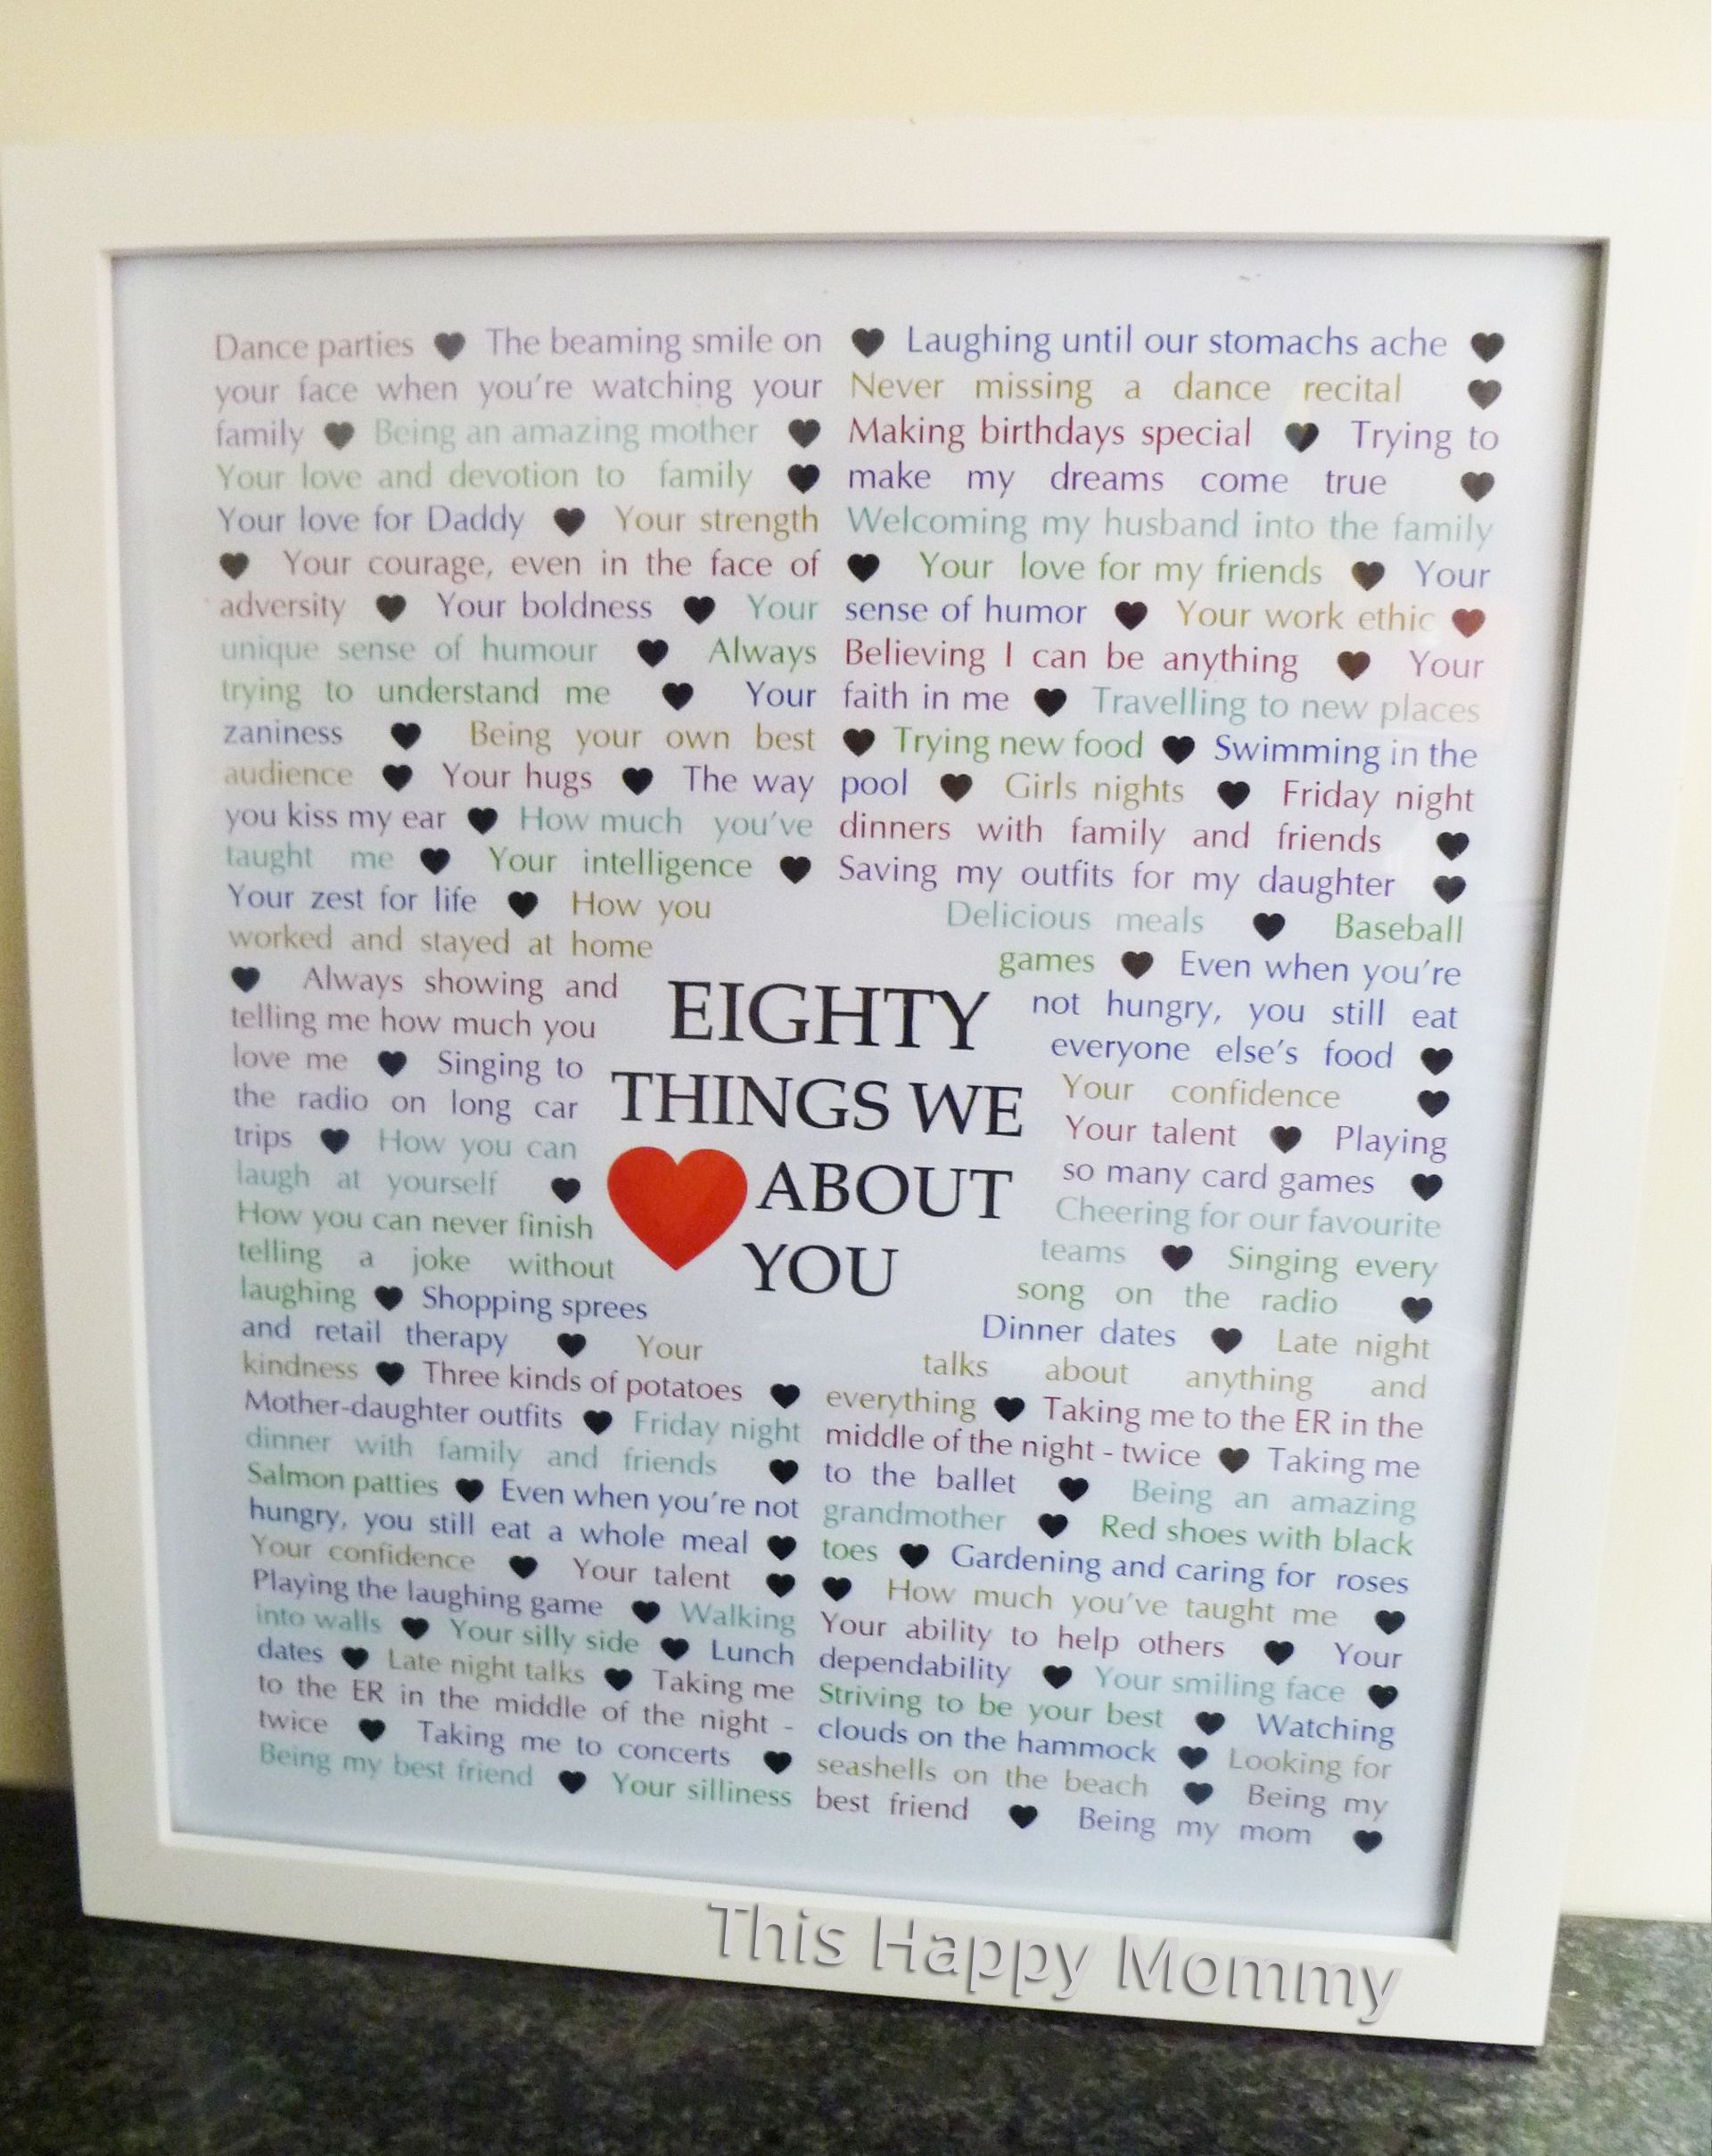 80 Things We About You The Perfect Homemade Gift For A Milestone Birthday 80birthday